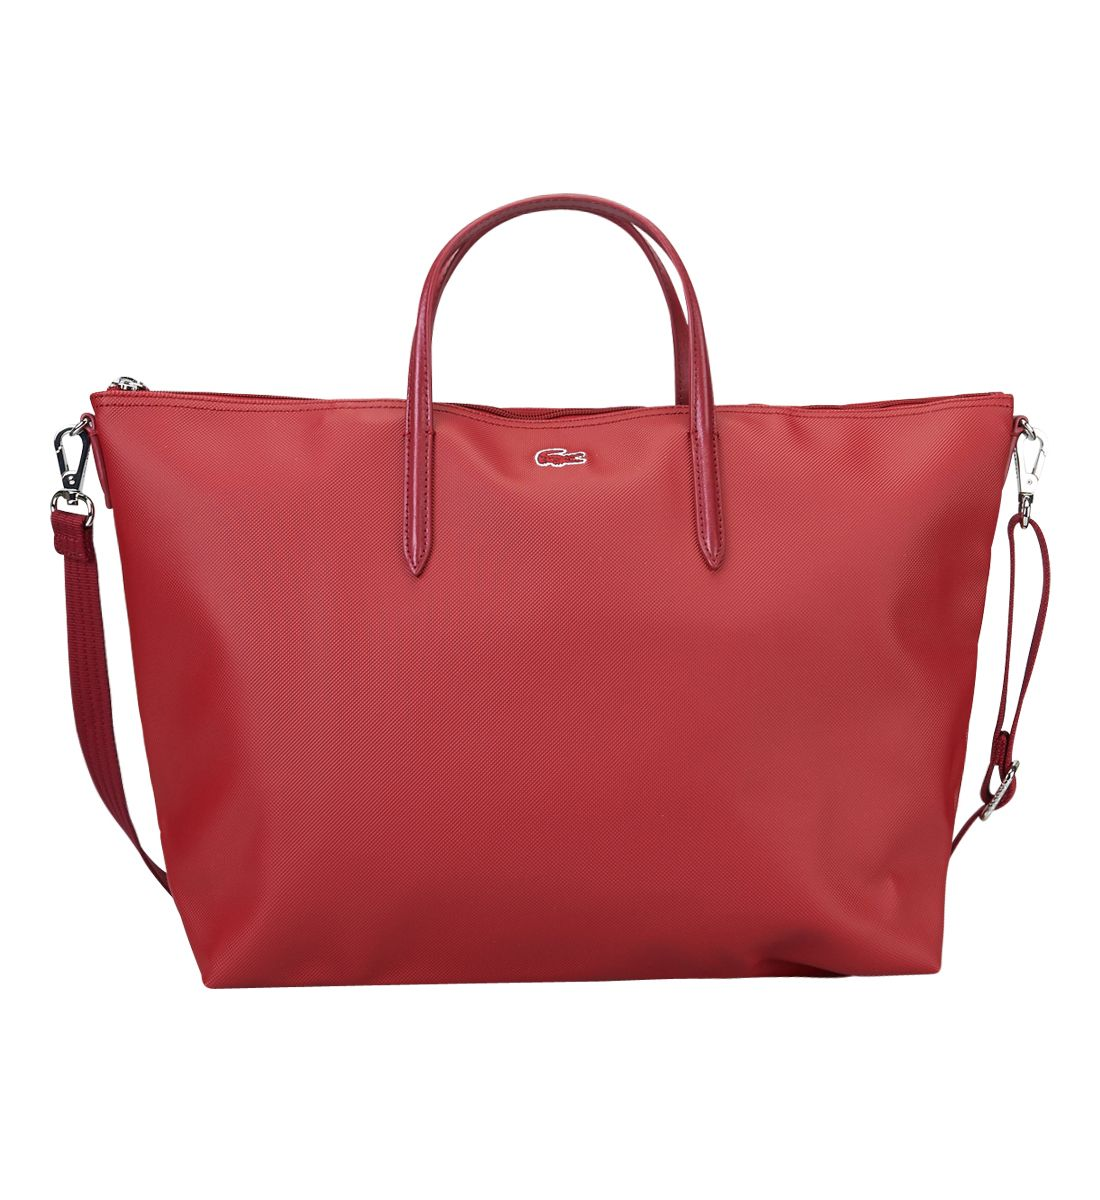 Rouge Lafayette 12 12 L Lacoste Galeries Strap Sac Shopping xnvp1HRaa